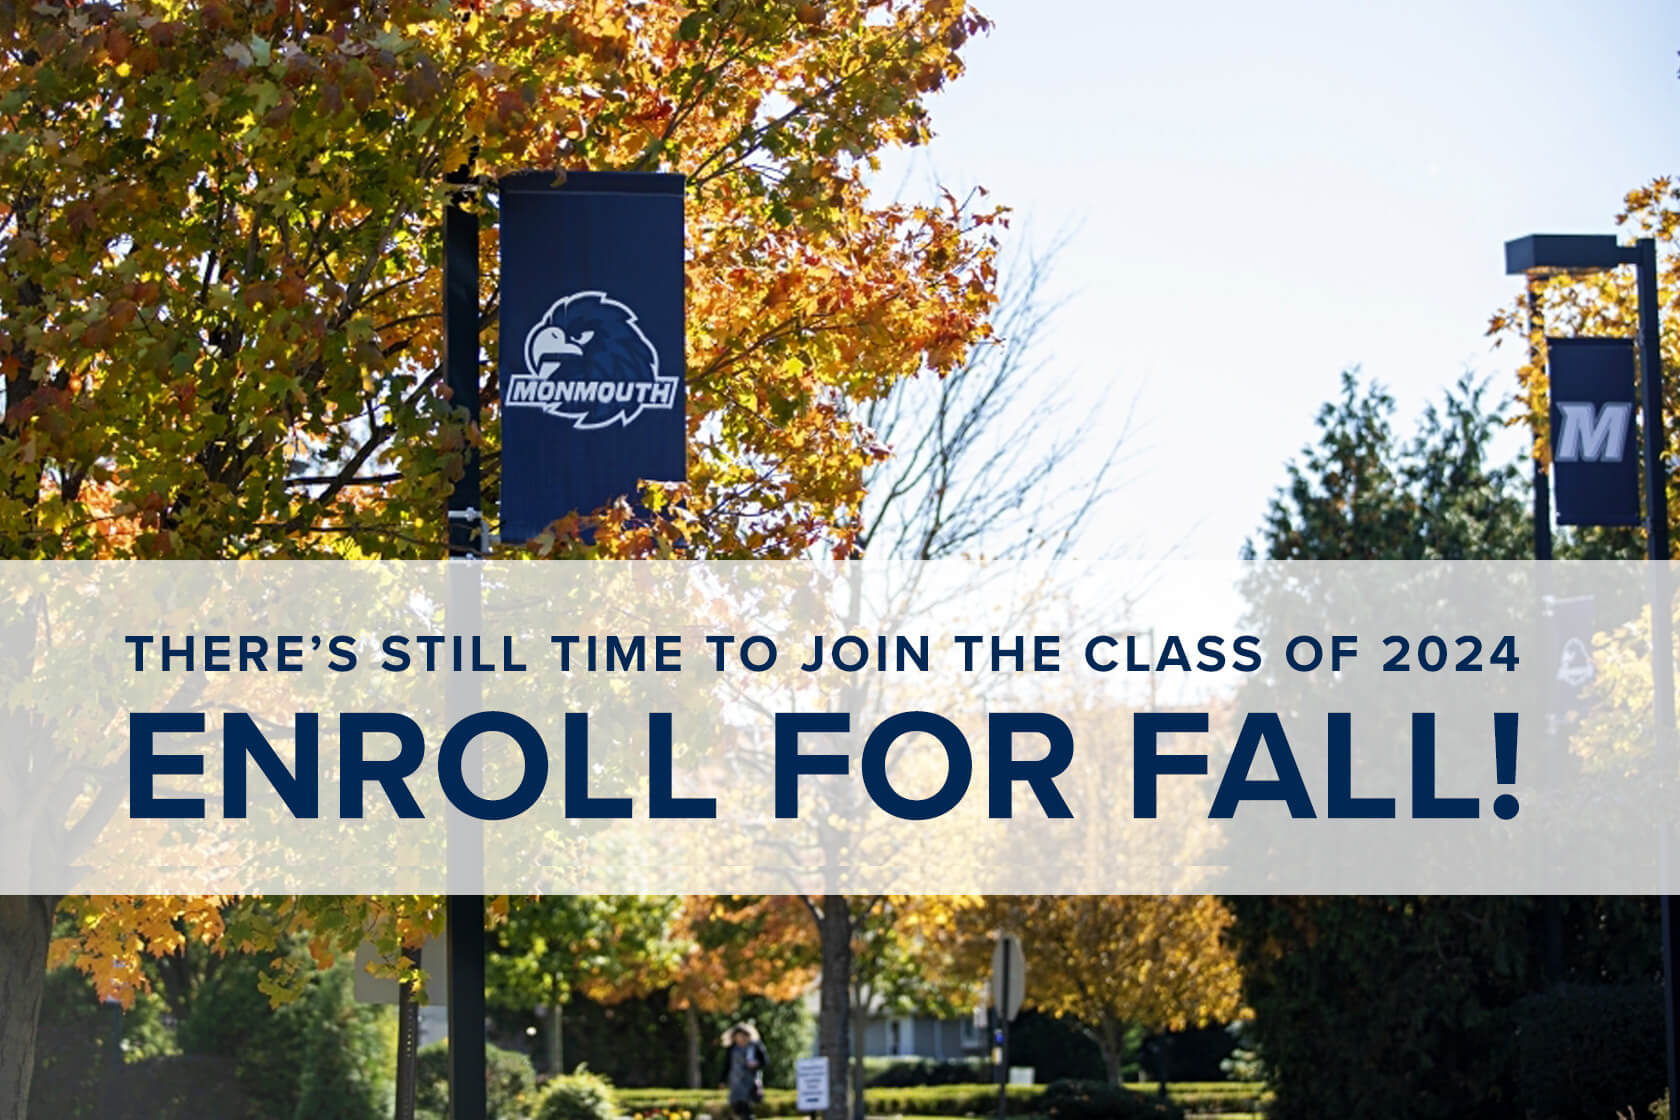 There's still time to join the class of 2024, enroll for fall! Deposit deadline extend to June 1.